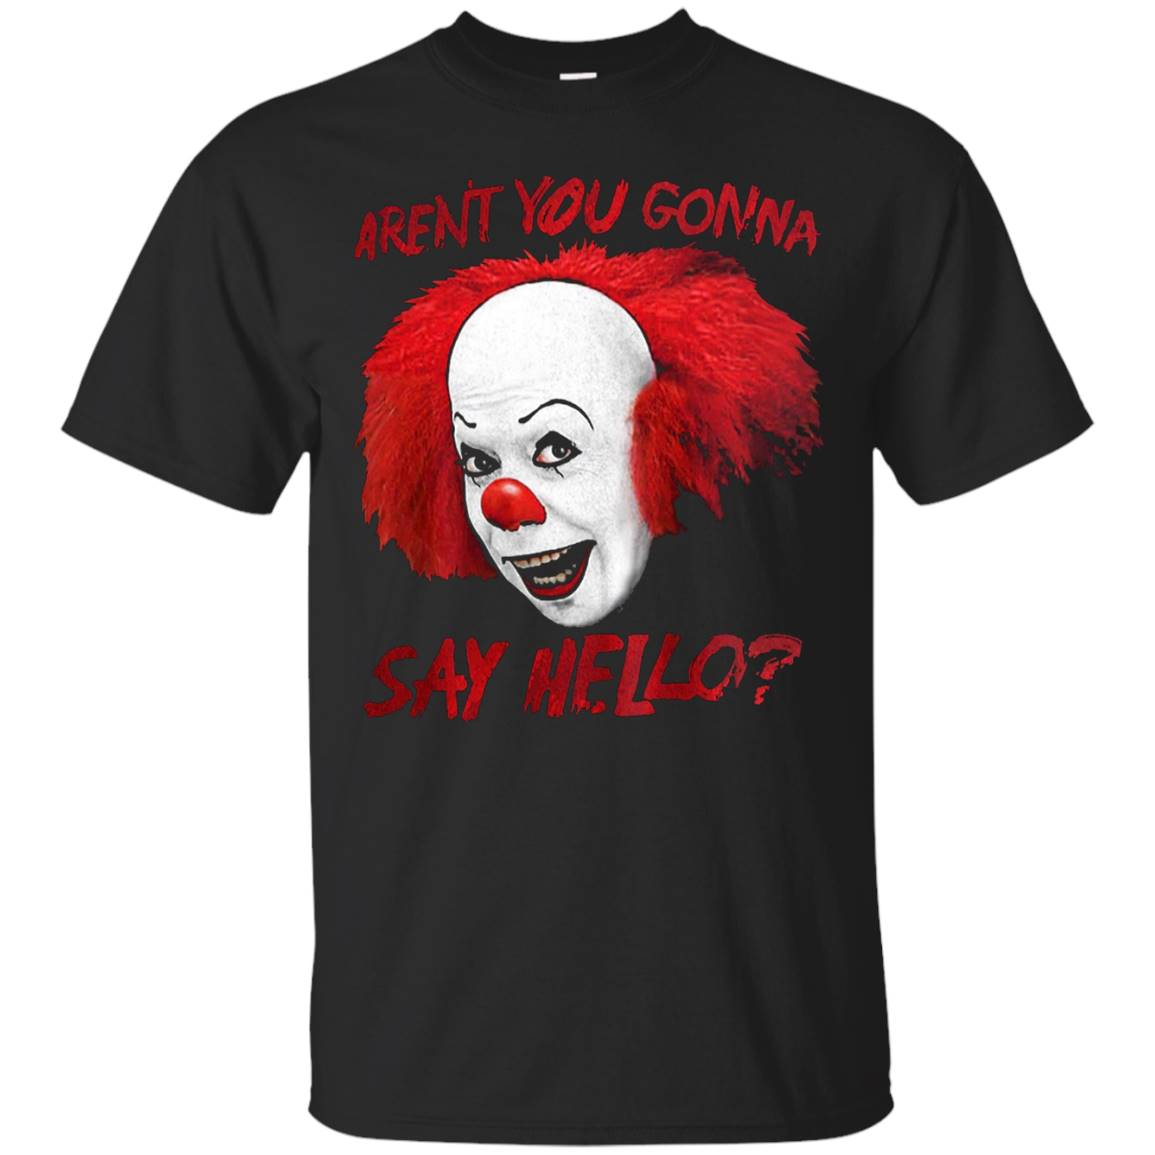 Aren't You Gonna Say Hello T-Shirt